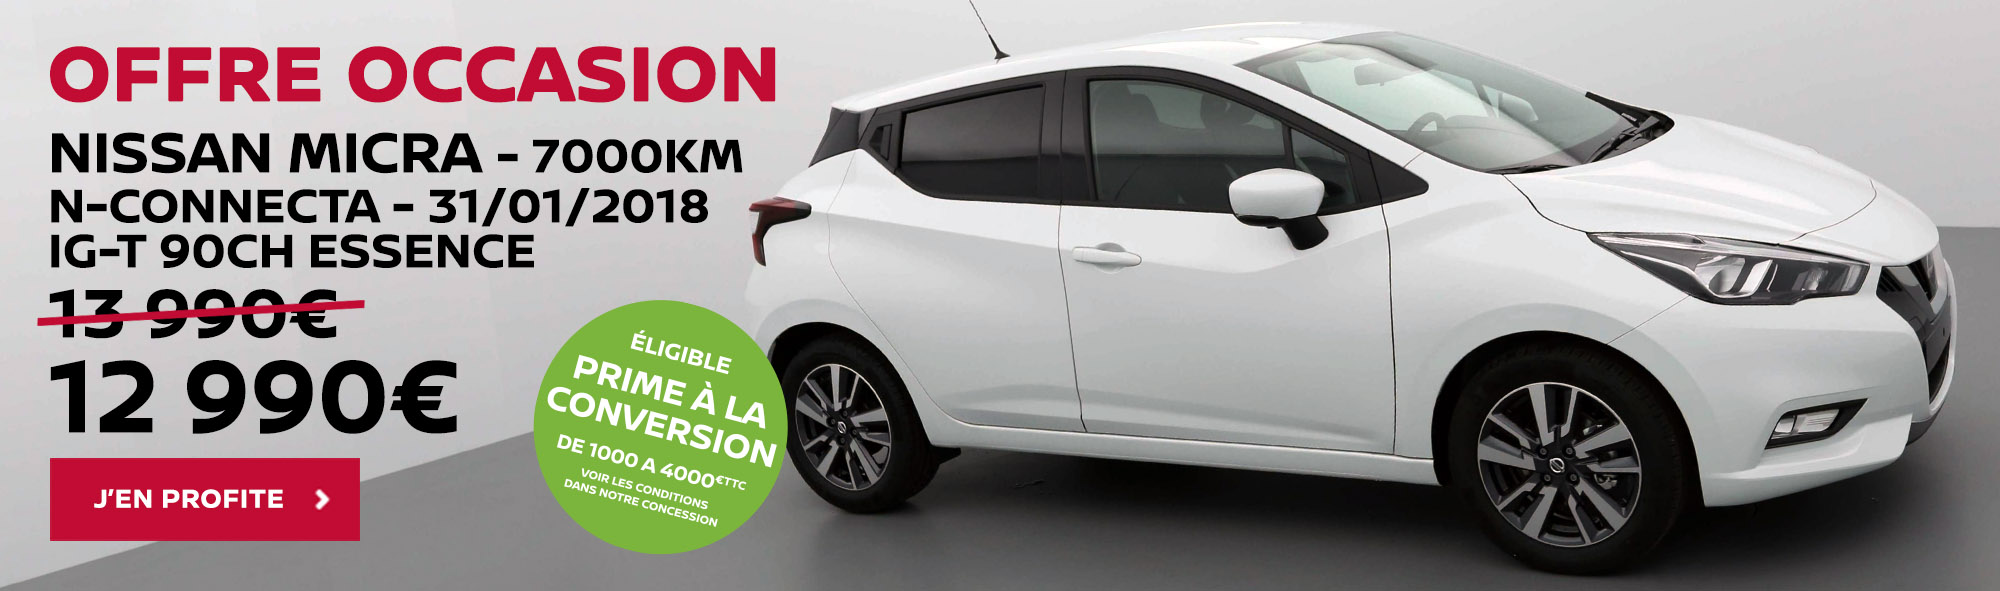 NISSAN TROYES OFFRE OCCASION NOUVELLE MICRA CONNECTA